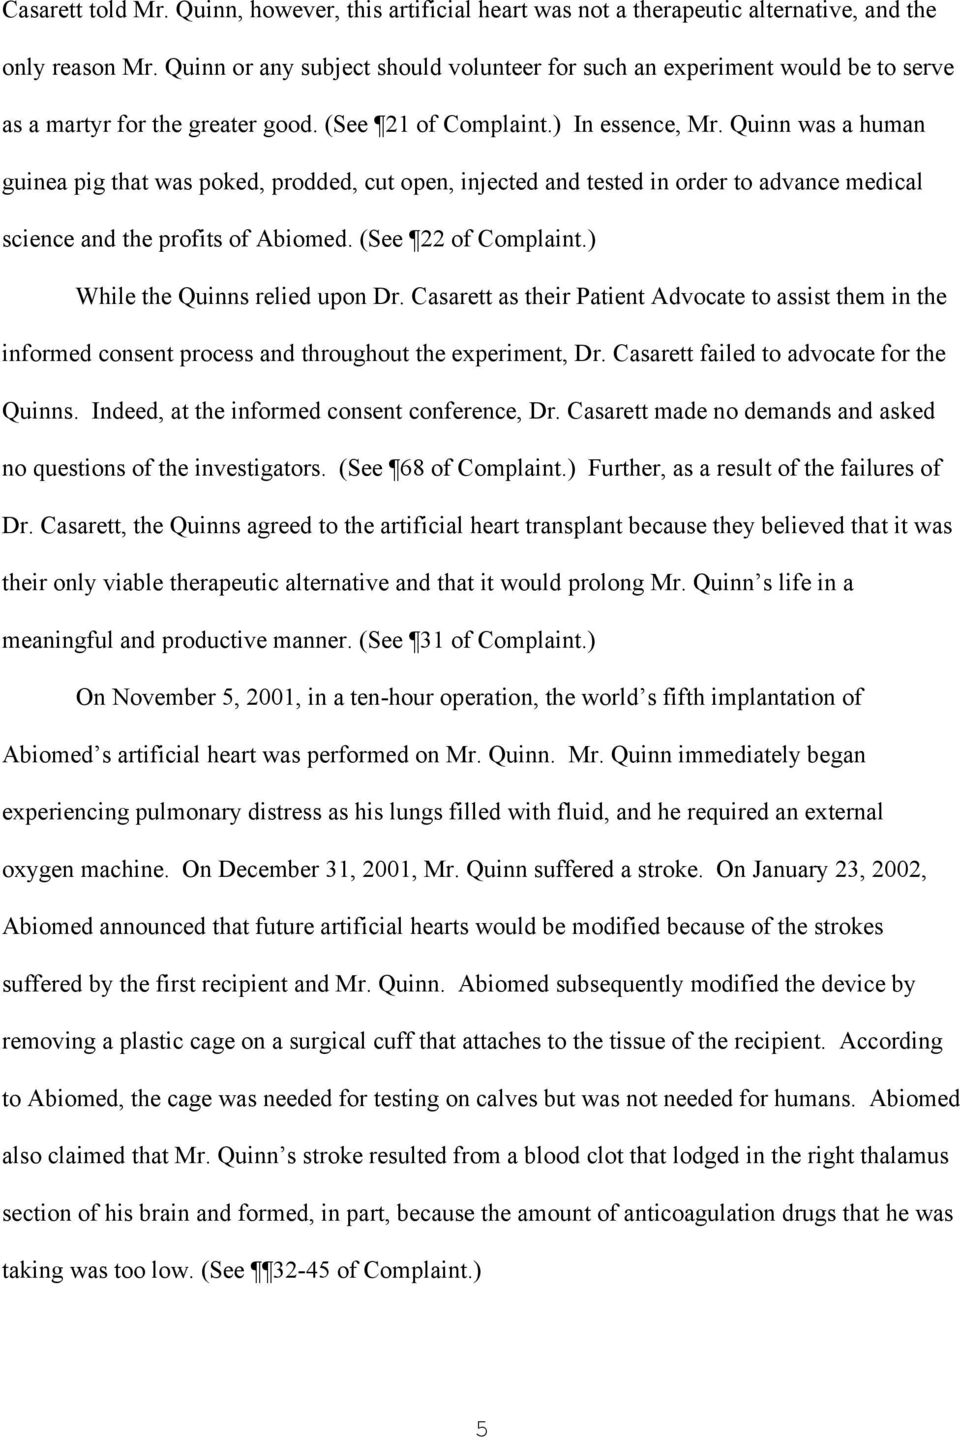 Quinn was a human guinea pig that was poked, prodded, cut open, injected and tested in order to advance medical science and the profits of Abiomed. (See 22 of Complaint.